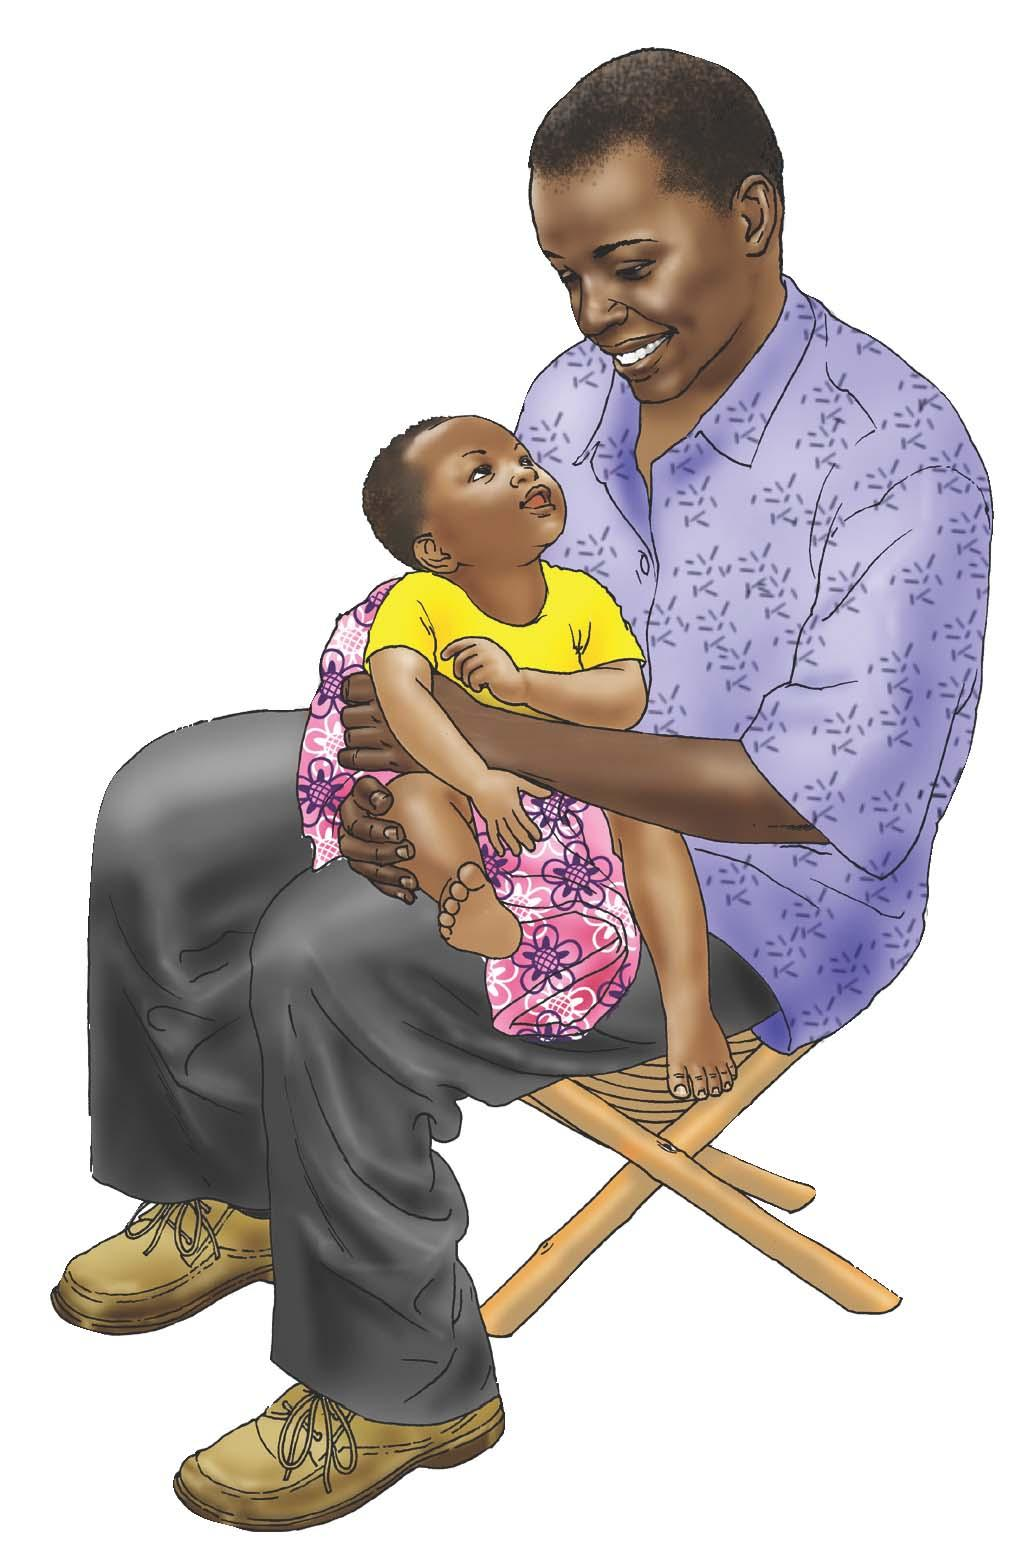 Father Support - Father taking care of child 6-9 mo - 01 - Nigeria